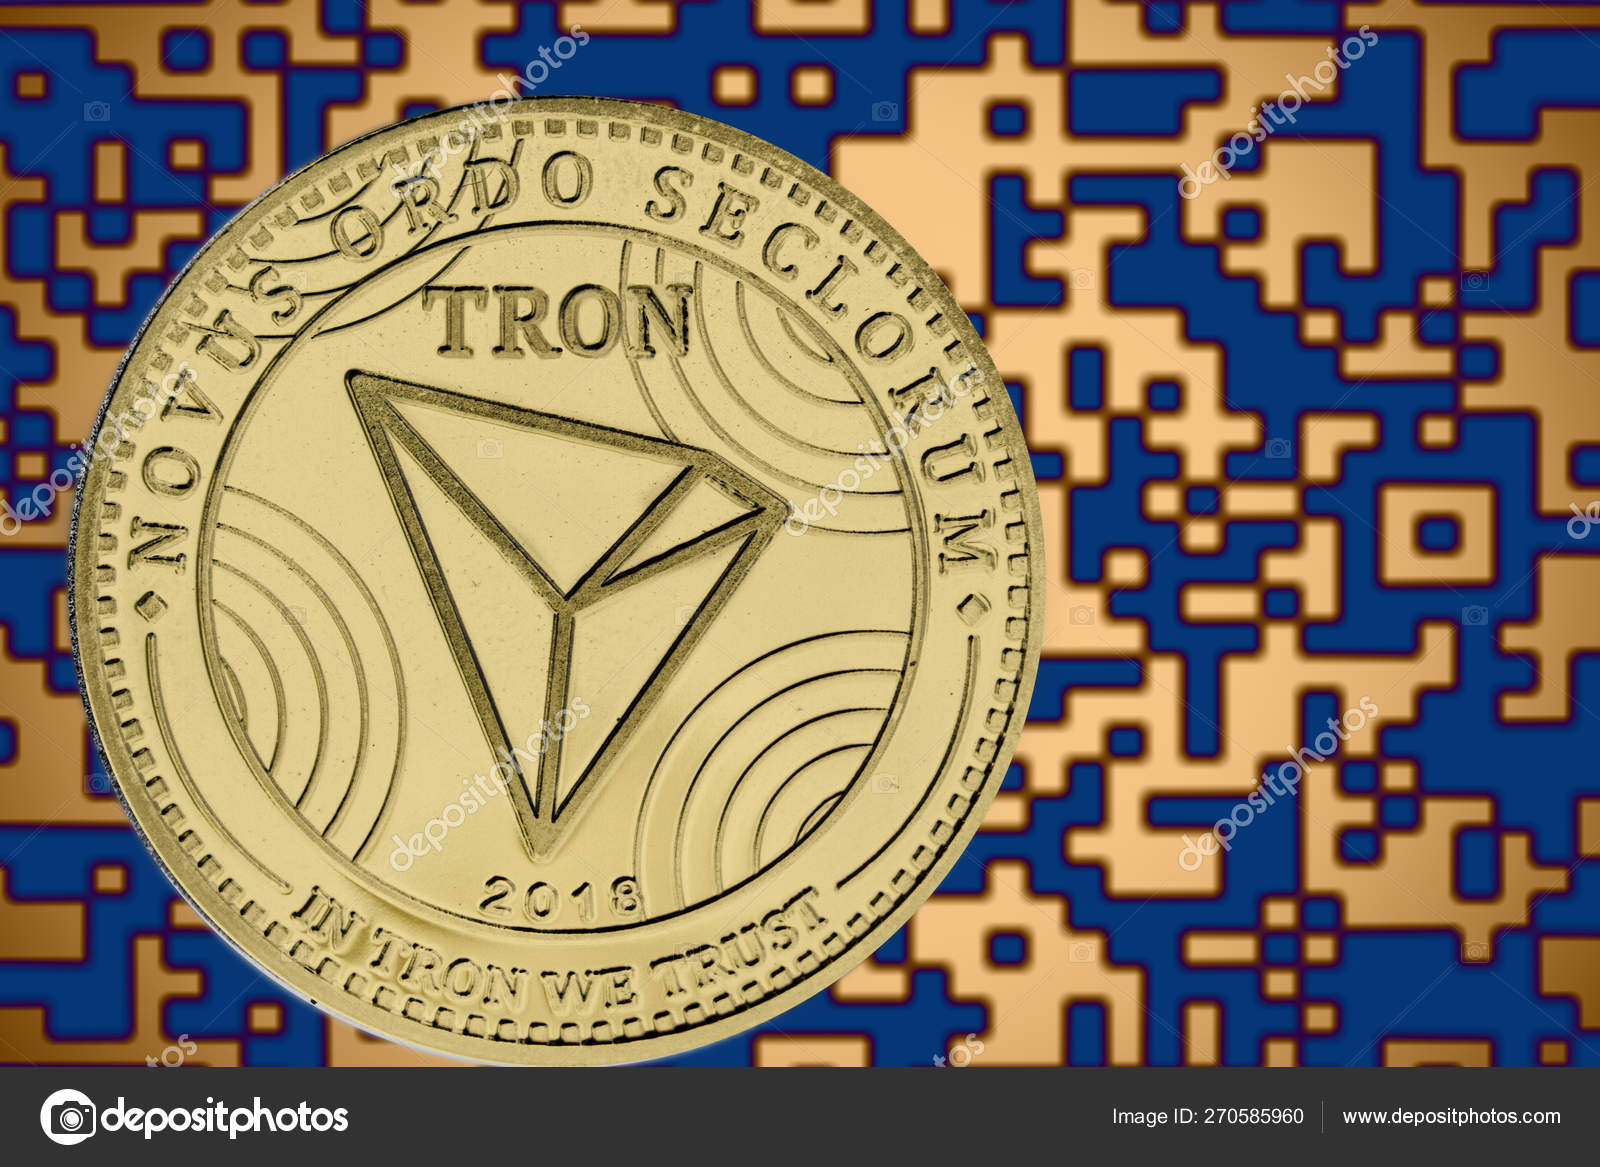 Token trx tron coin cryptocurrency on the background of gold crypto